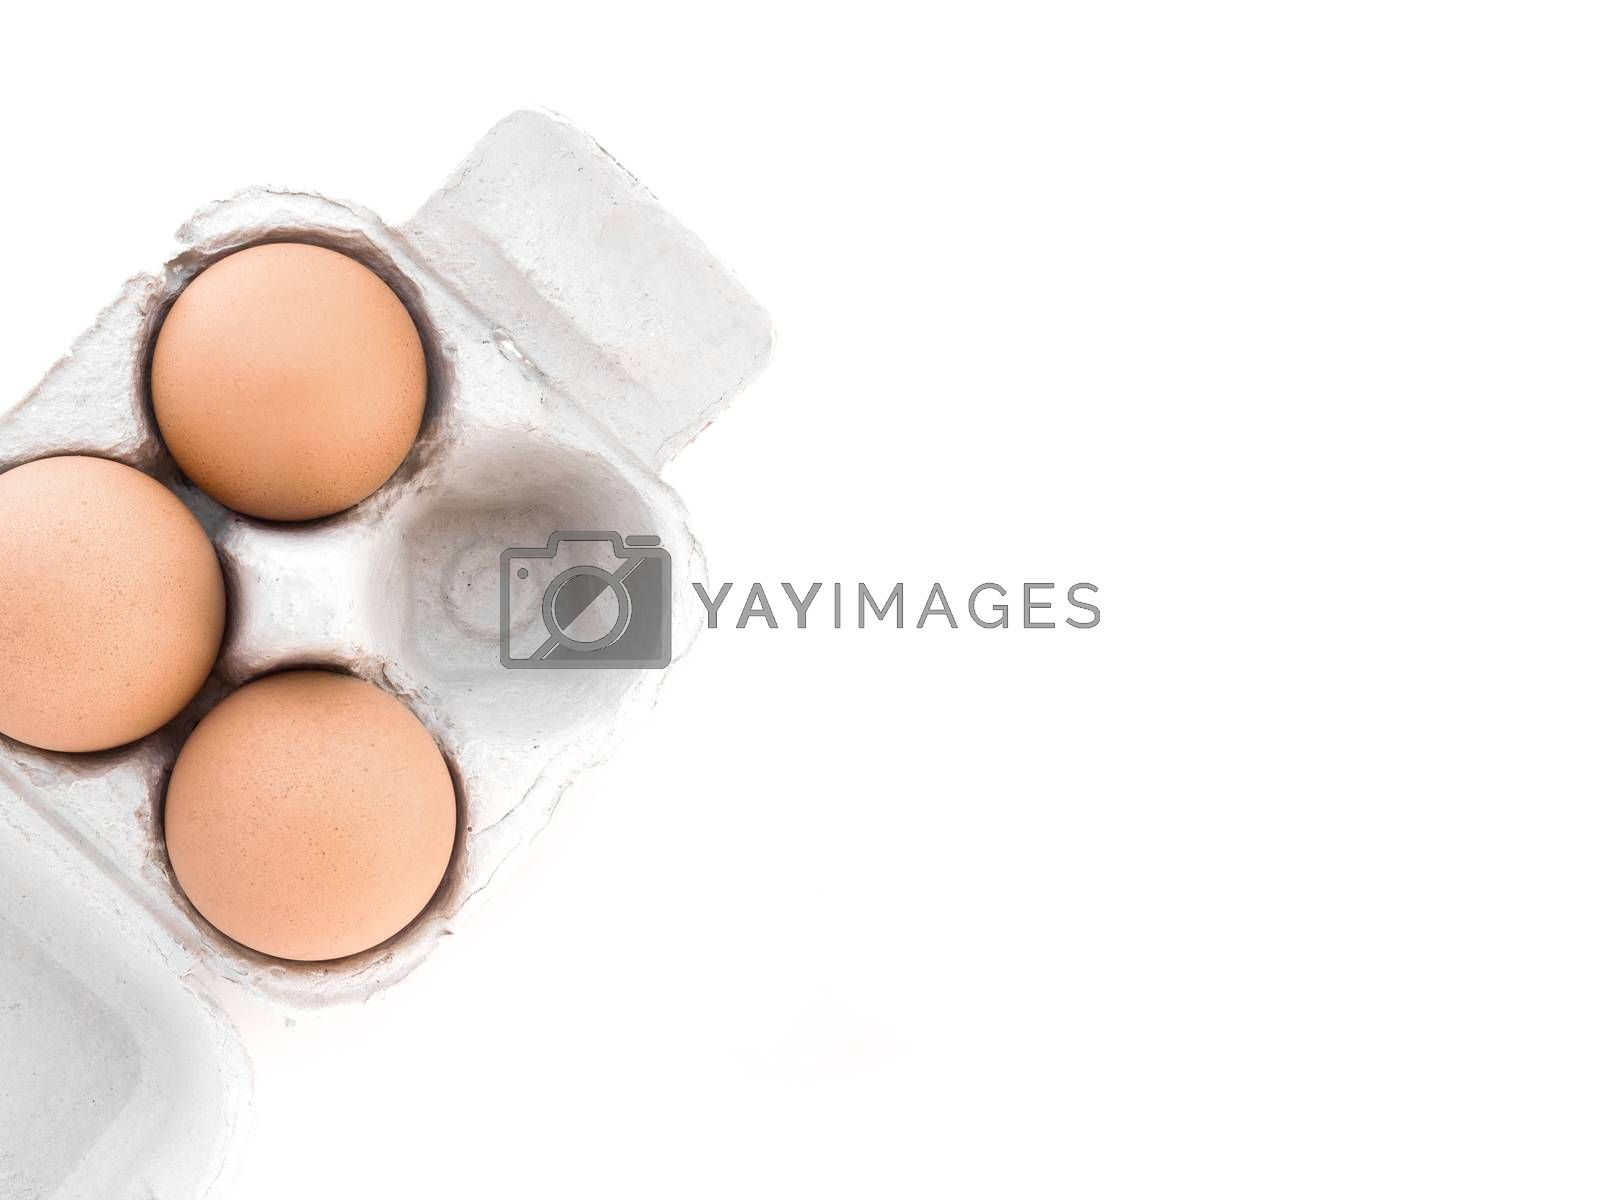 Disposable four pack egg tray. Organic Egg Pack. Isolated with copy space.